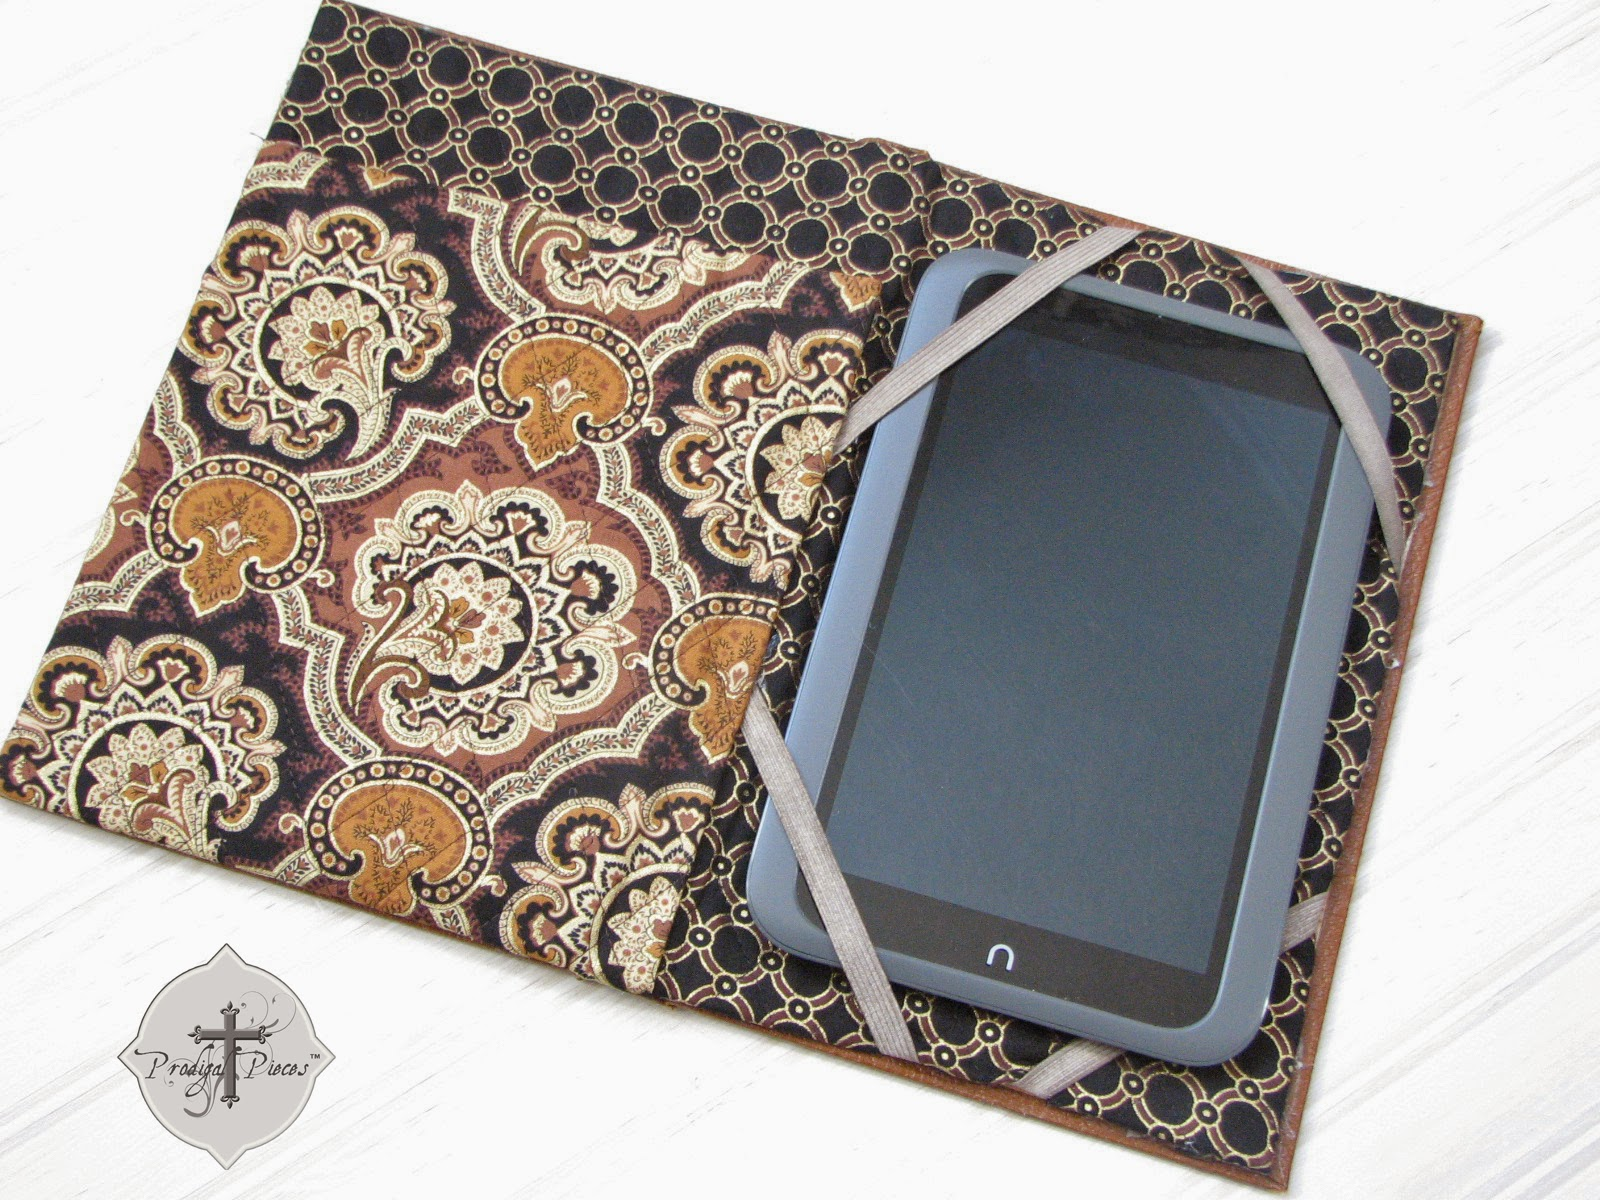 Handmade Nook Kindle Cover Case with Repurposed Vintage Book via Prodigal Pieces